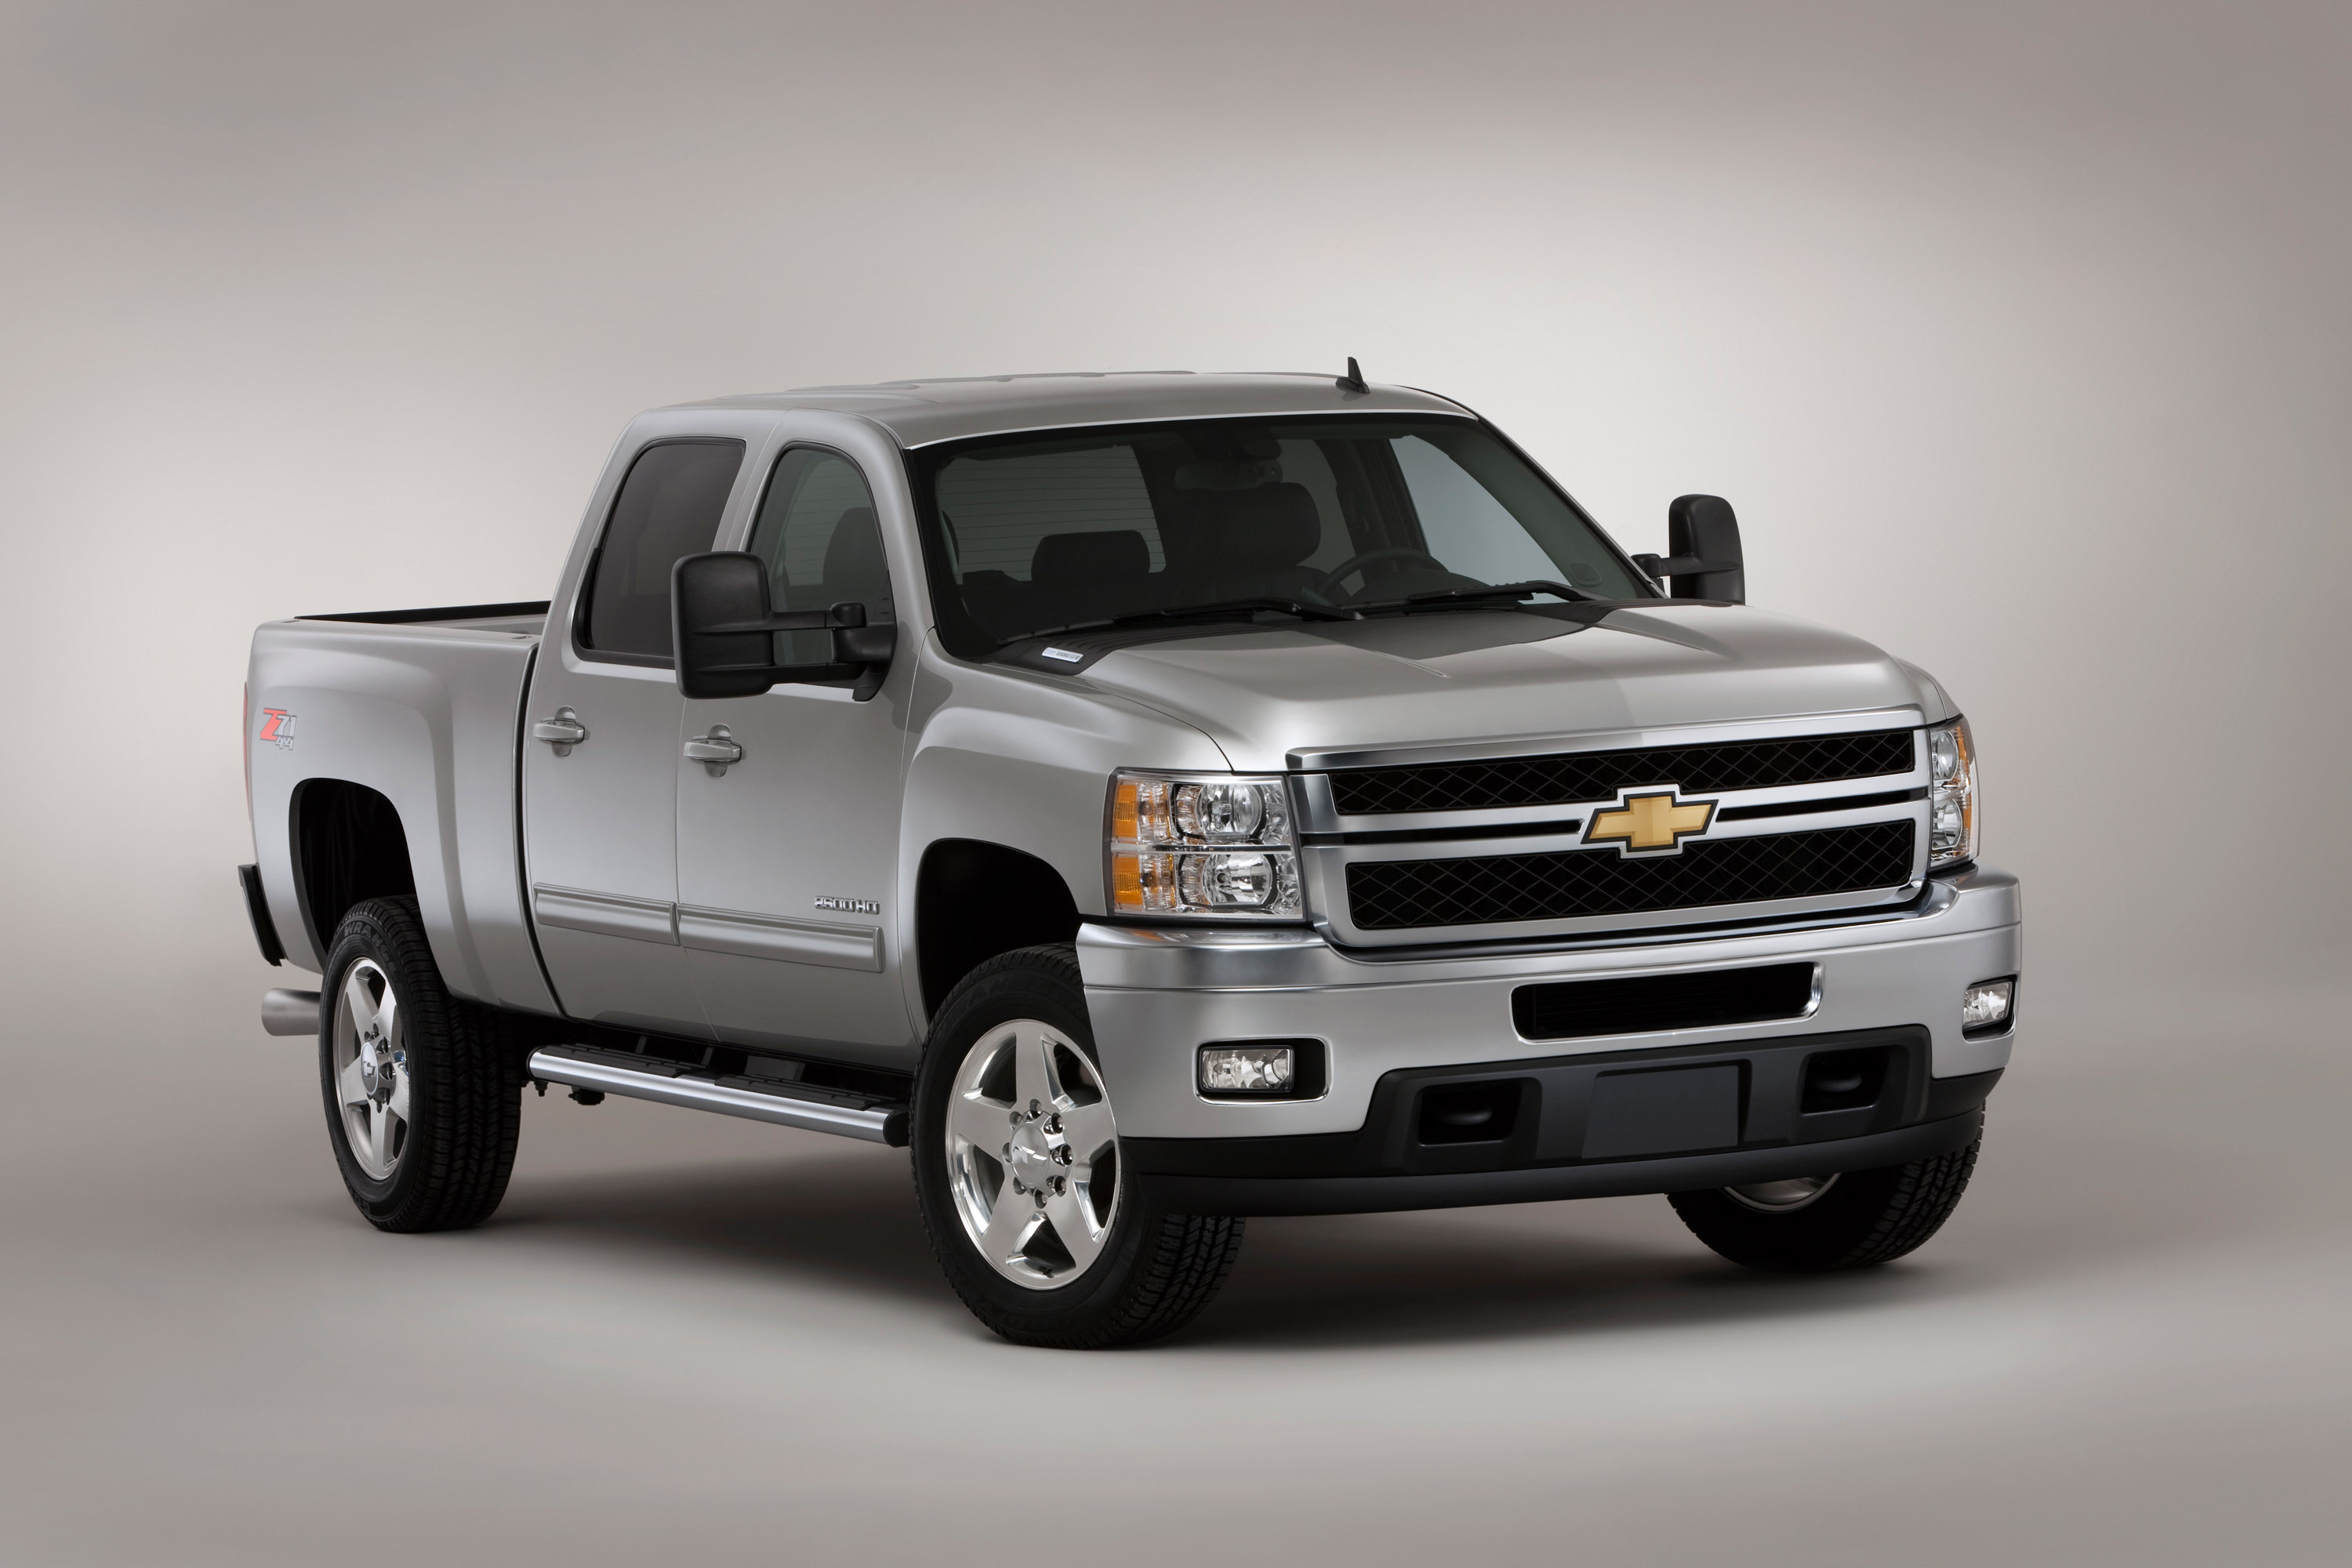 2011 chevrolet silverado 2500 hd ltz picture 32725. Black Bedroom Furniture Sets. Home Design Ideas